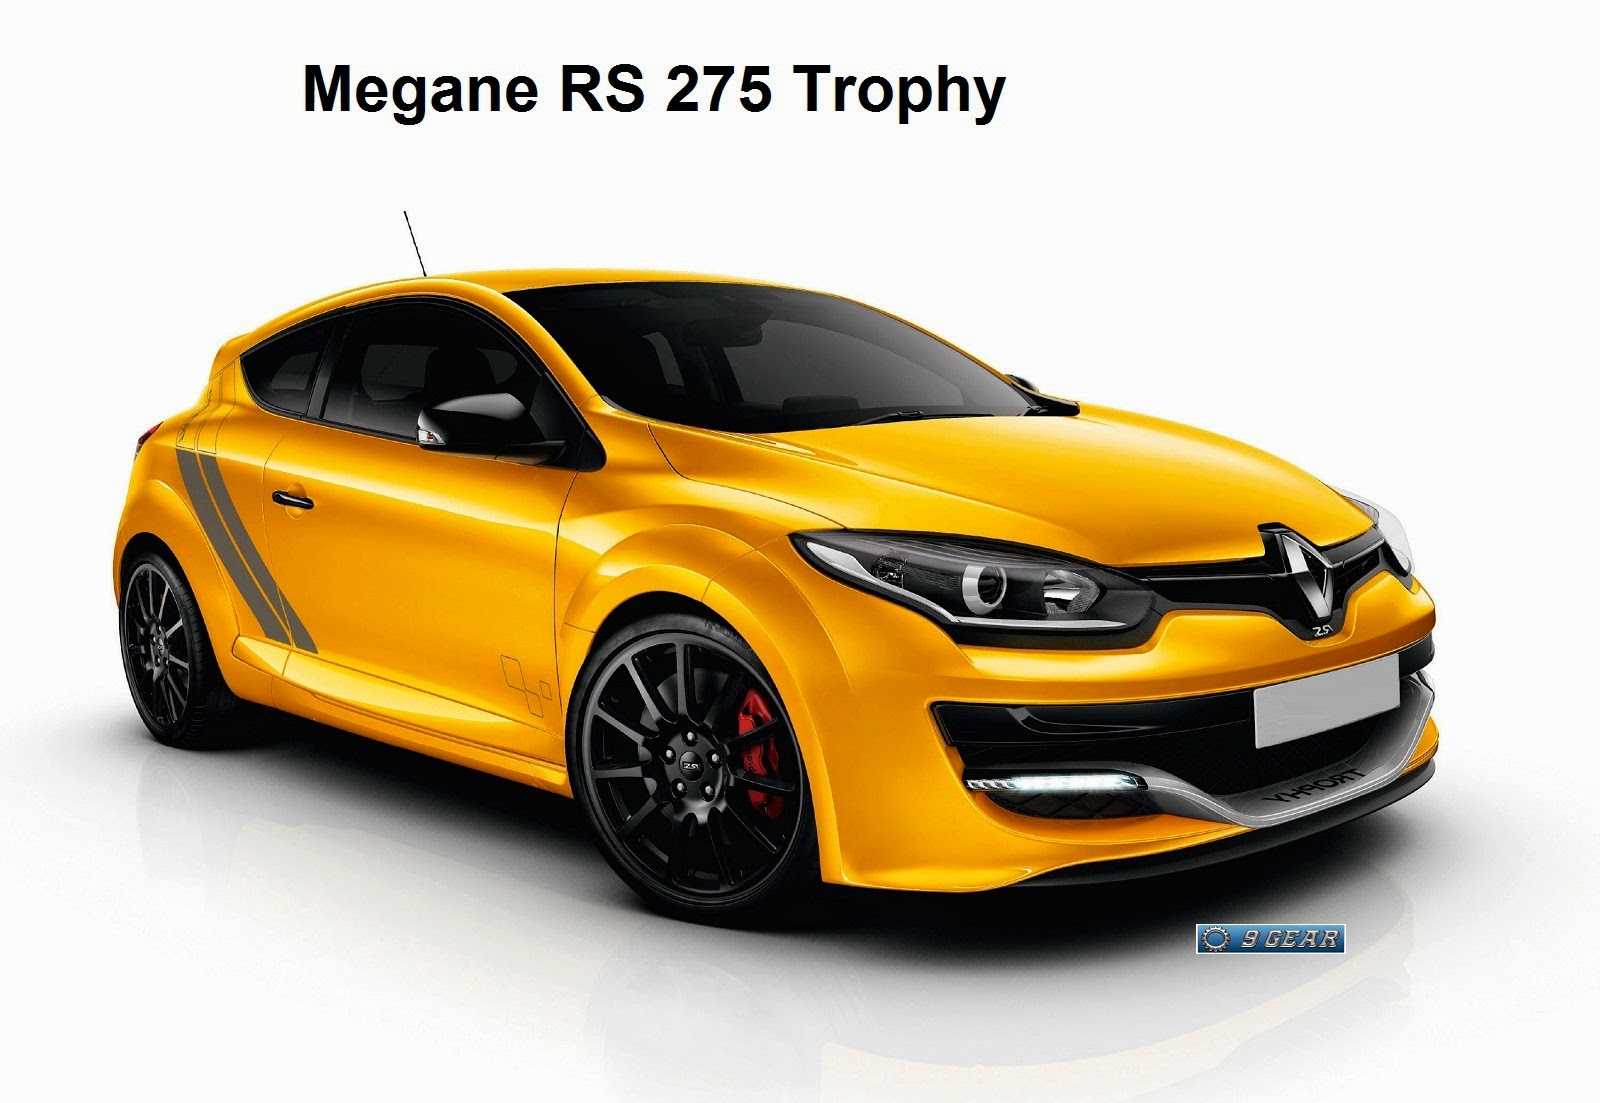 new renault megane rs 275 trophy car reviews new car pictures for 2018 2019. Black Bedroom Furniture Sets. Home Design Ideas